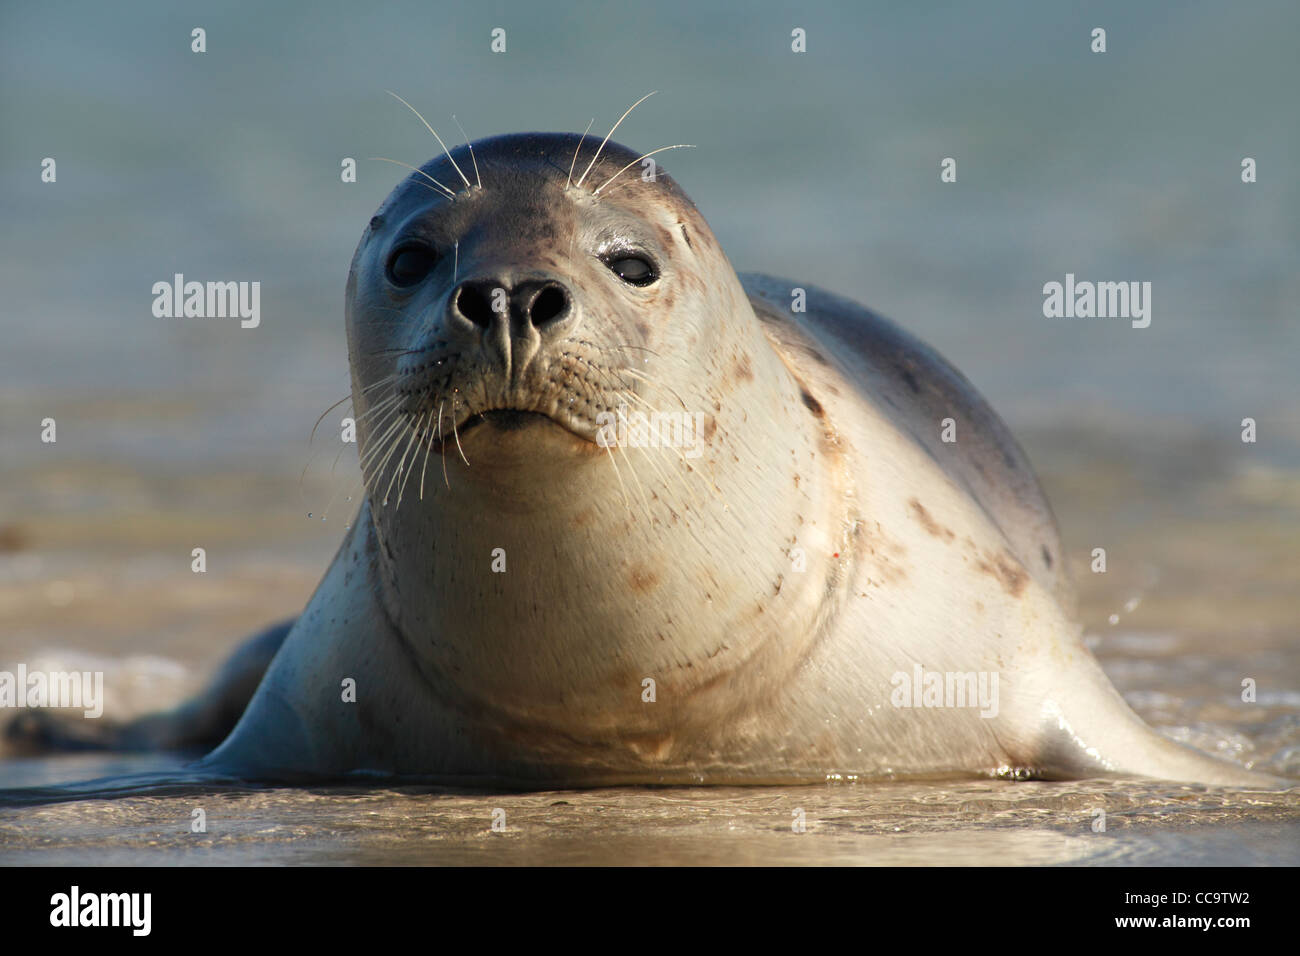 grey seal; Latin: Halichoerus grypus - Stock Image